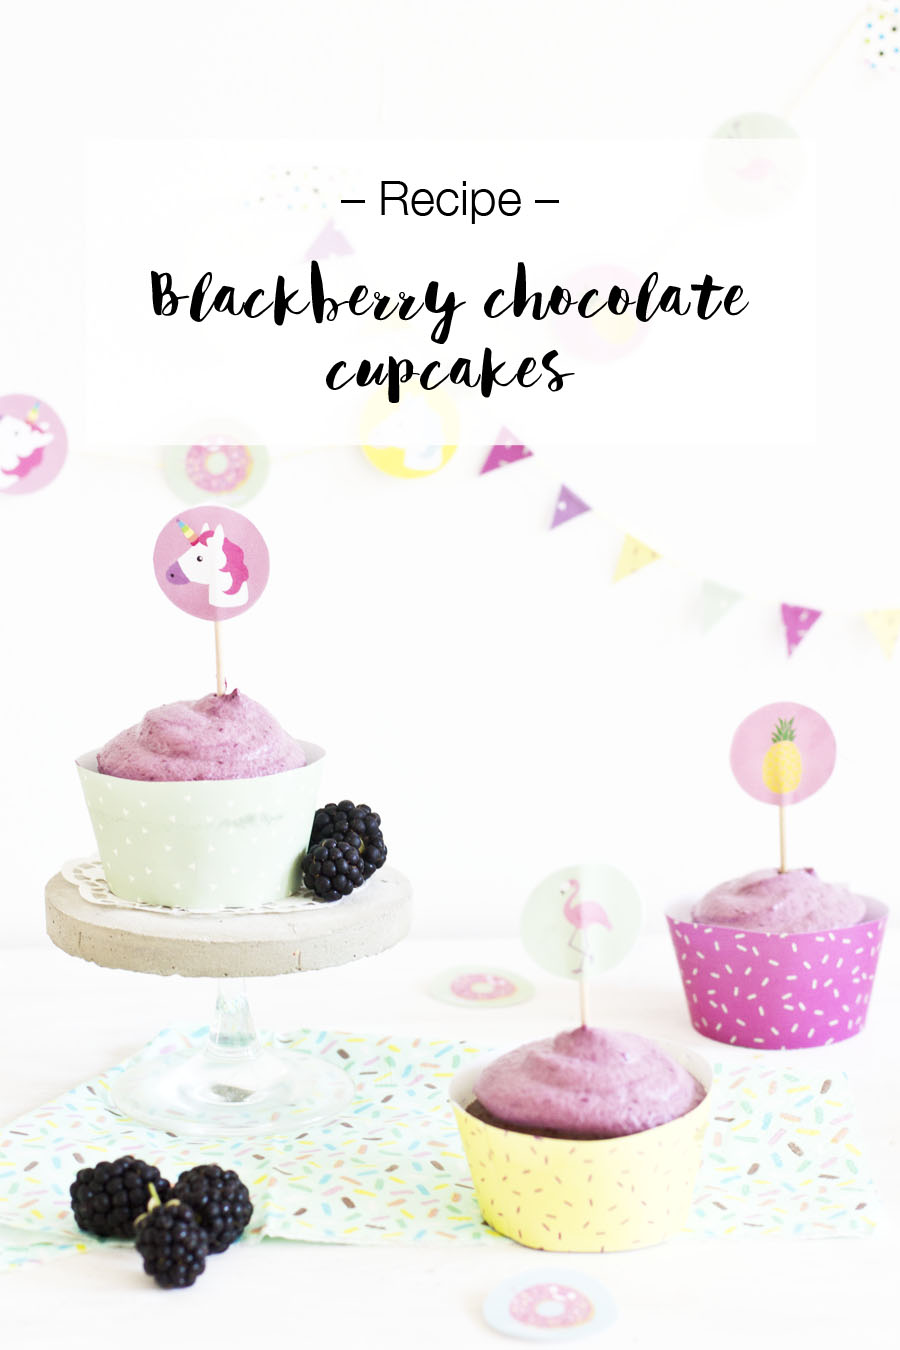 Blackberry chocolate cupcake recipe | LOOK WHAT I MADE ...